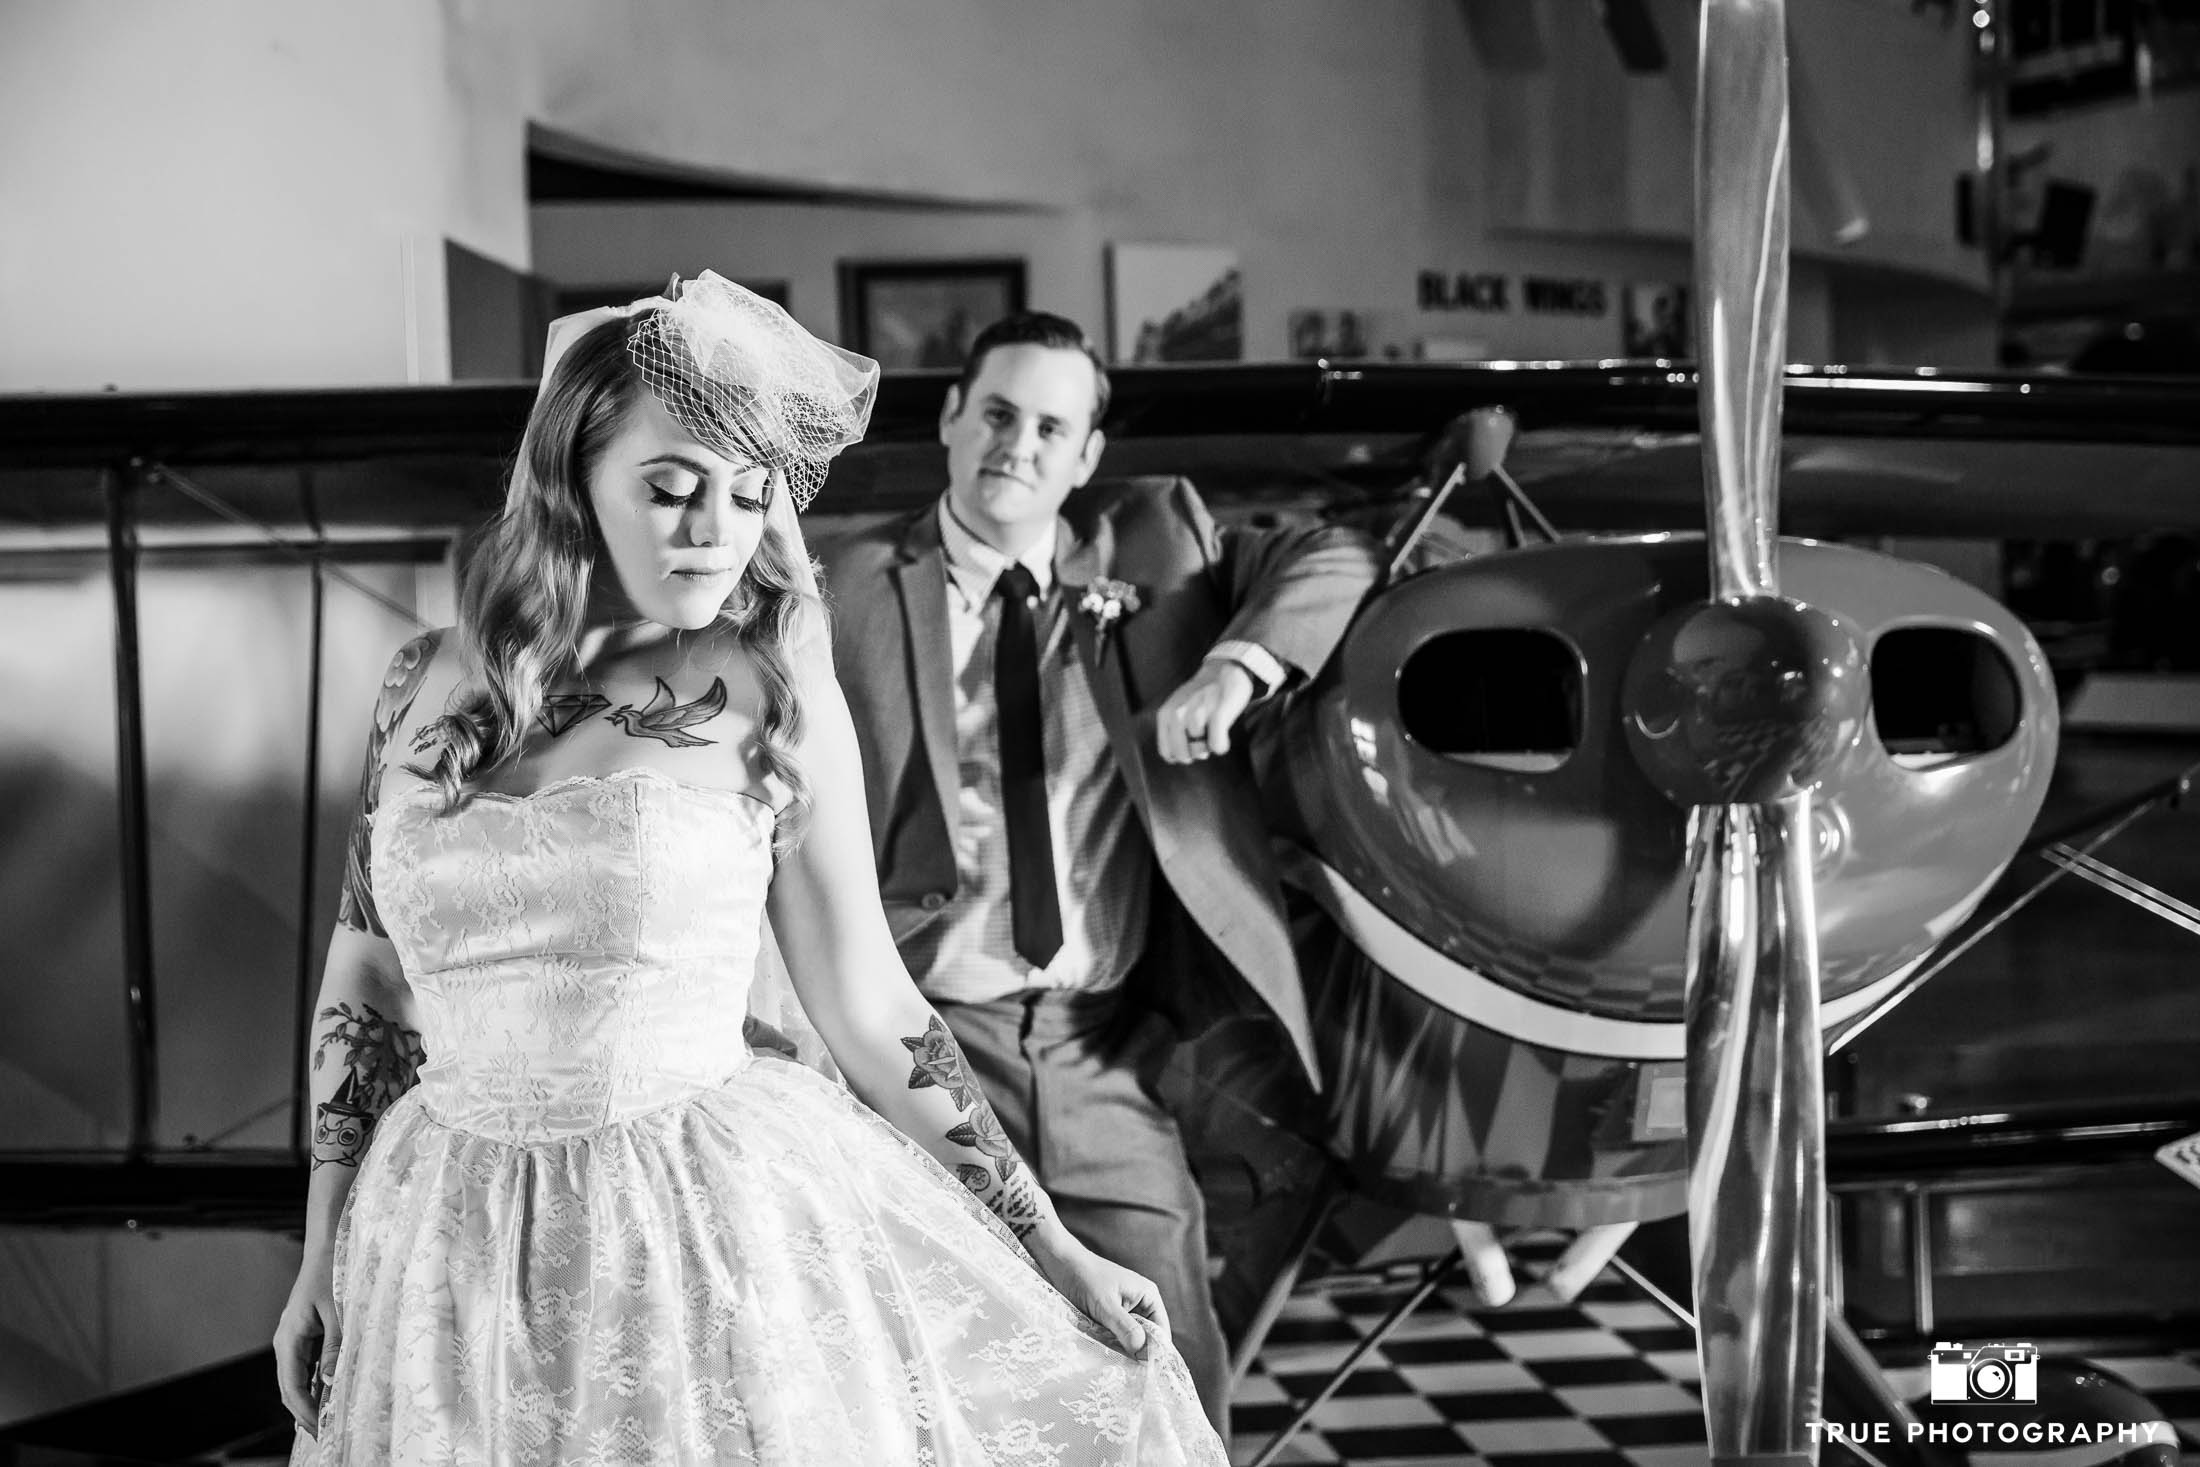 Black-and-white photo of bride and groom by airplane propellor